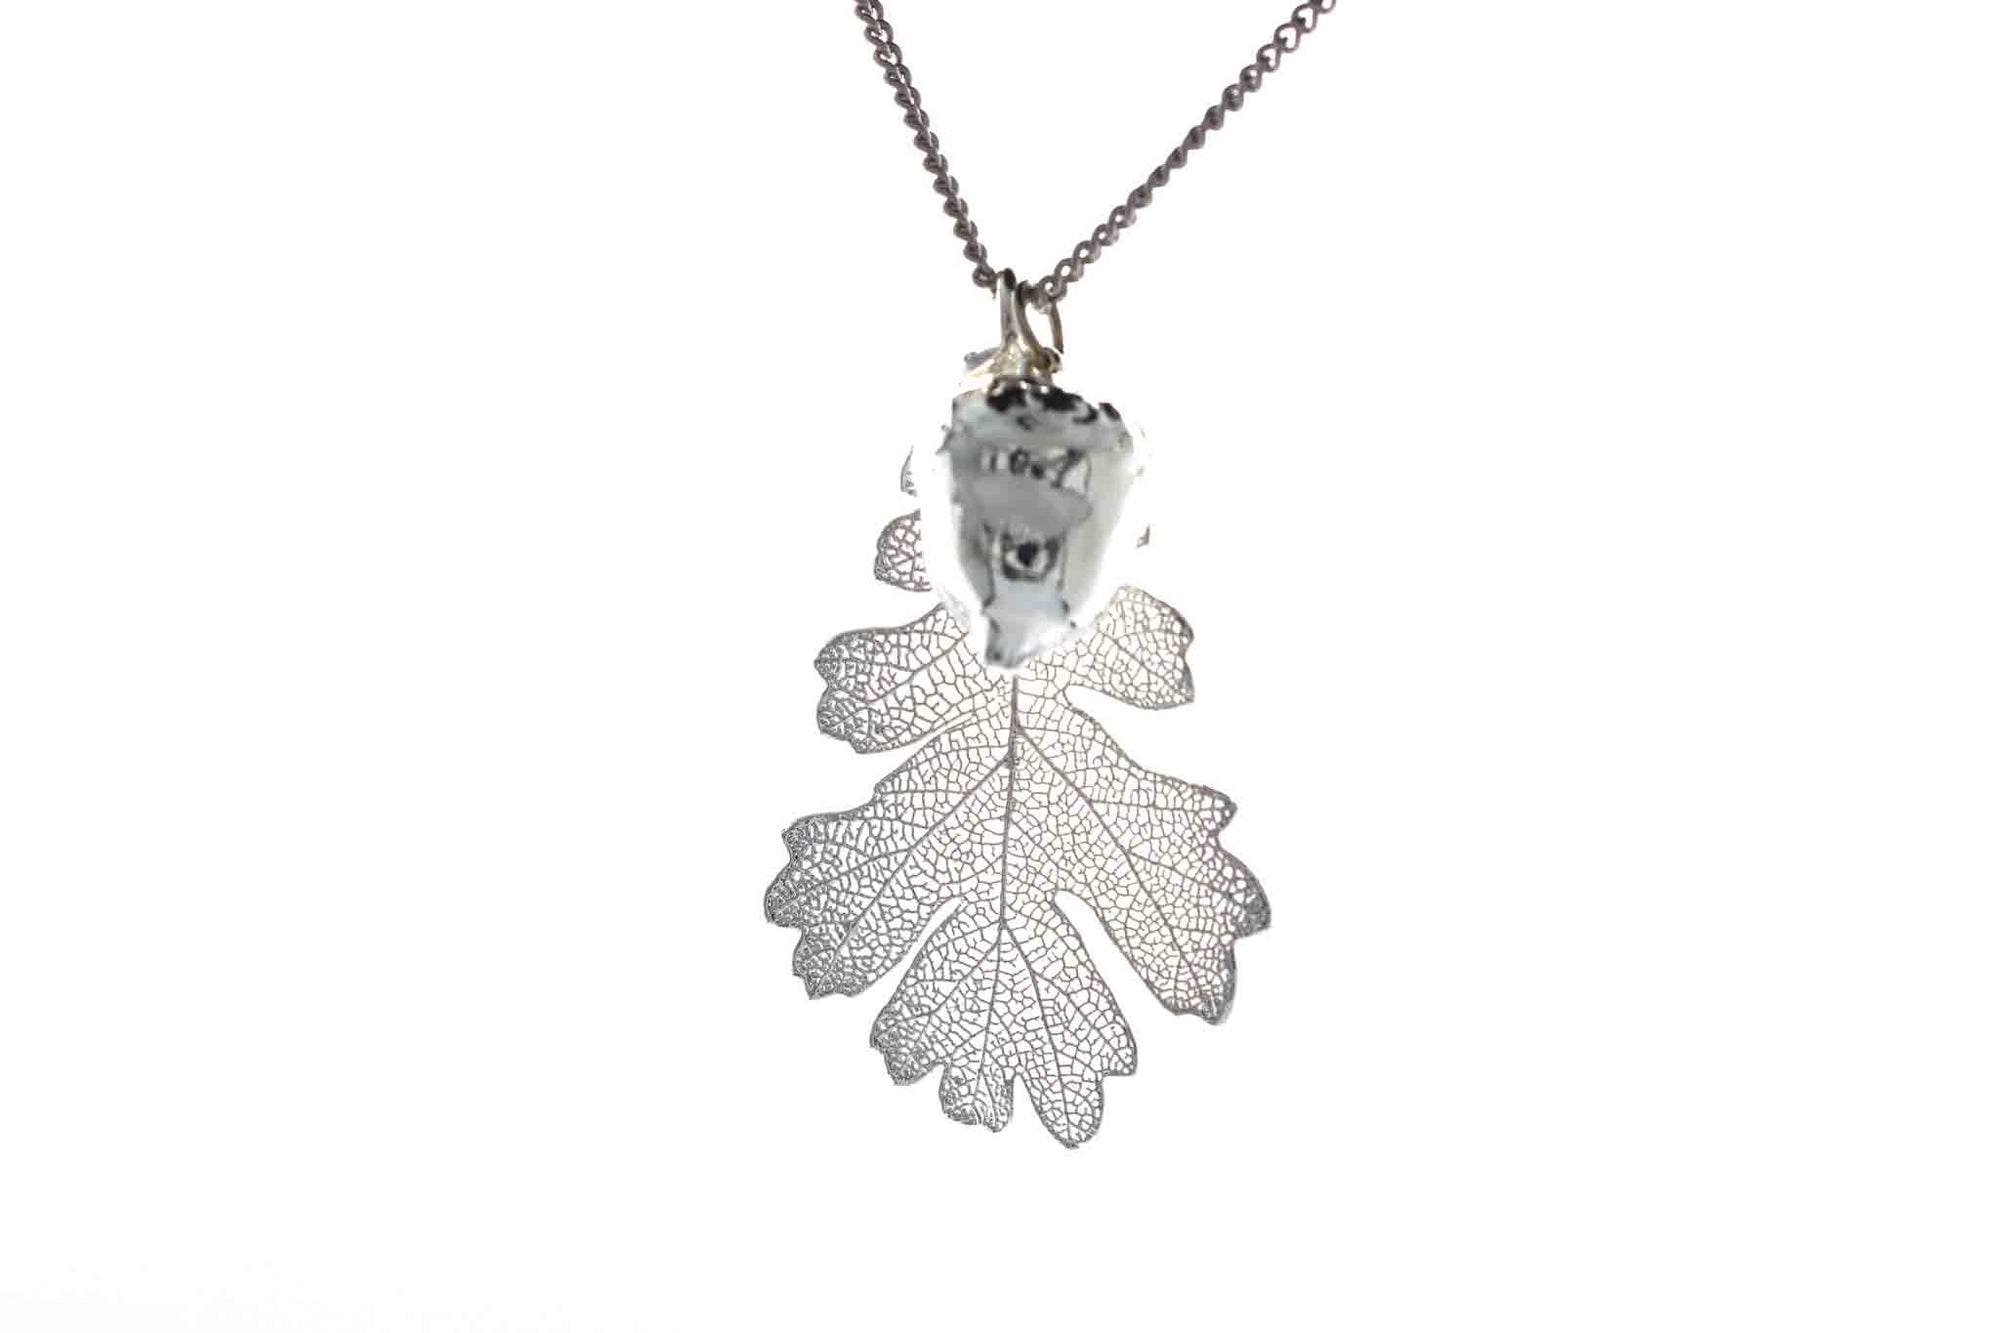 Real Oak Leaf And Acorn Necklace In Silver